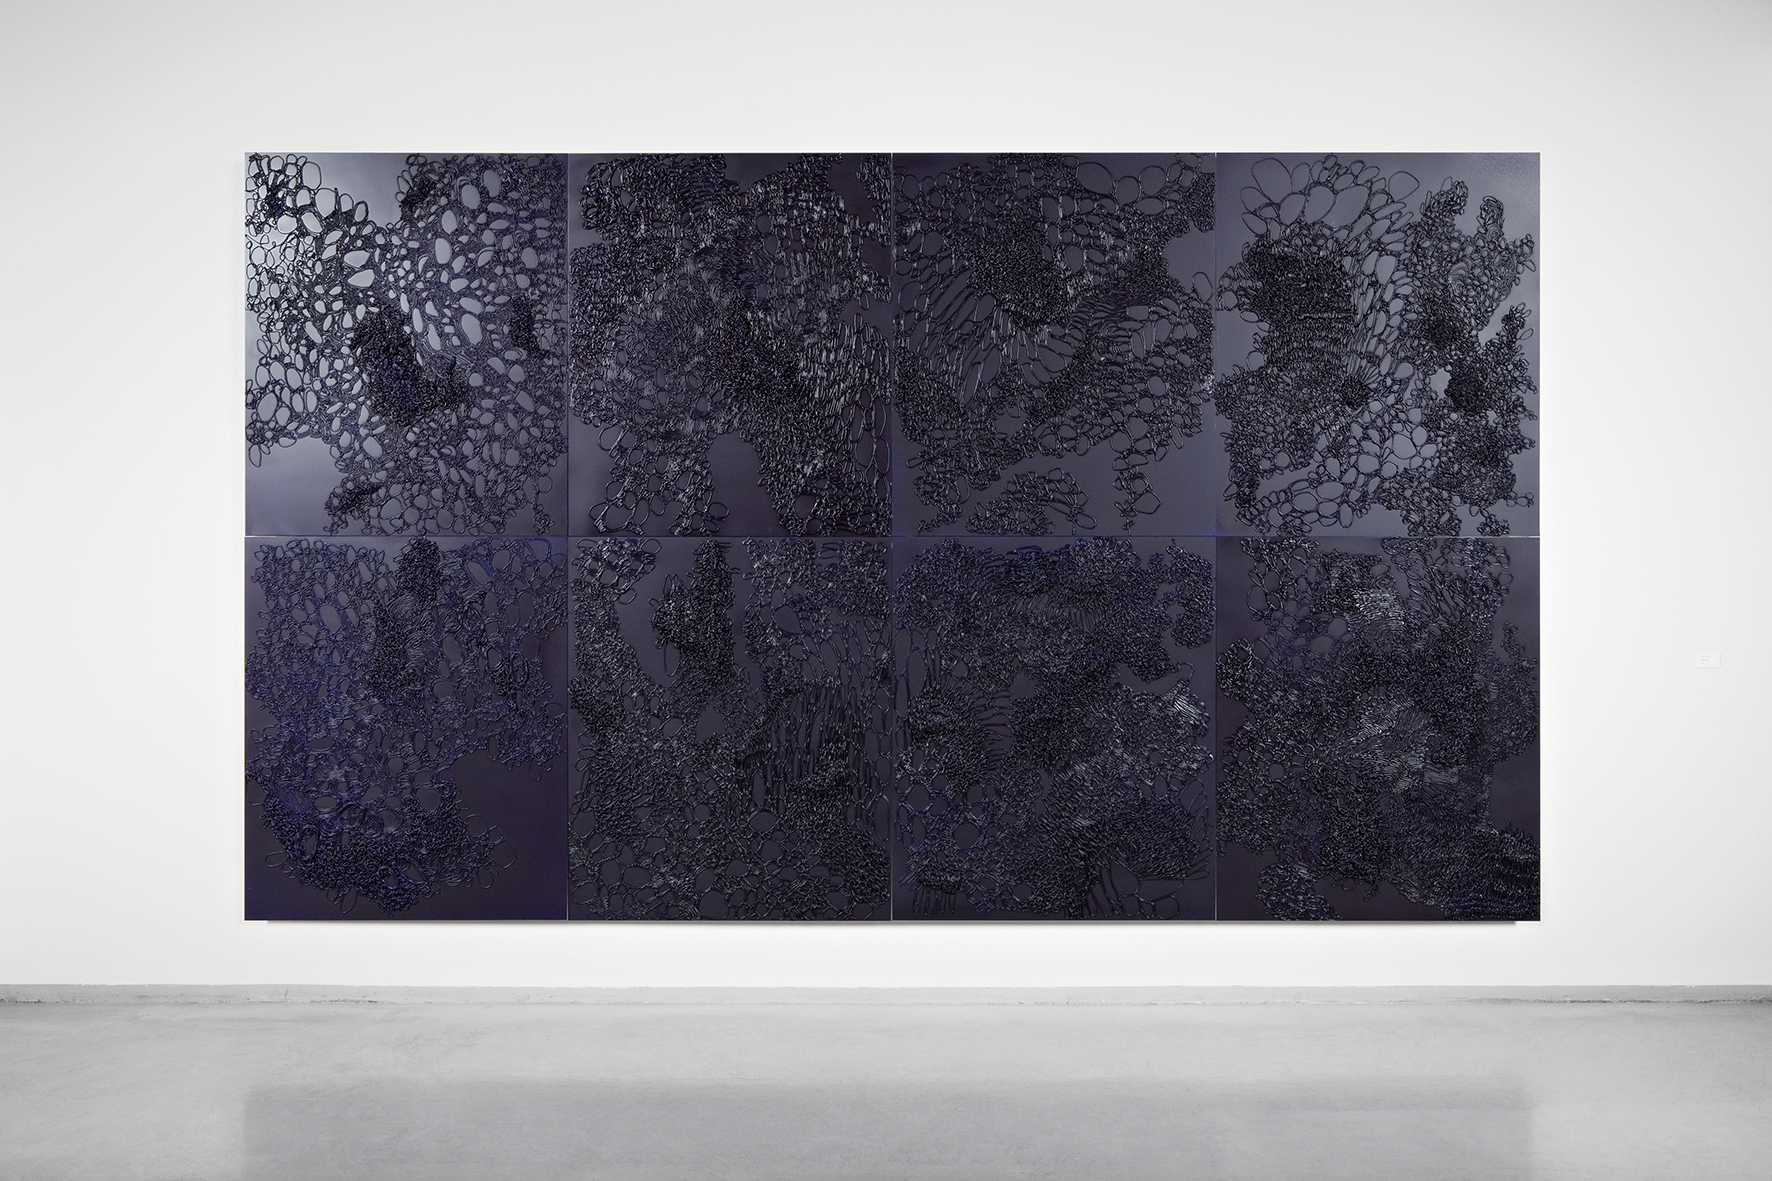 Midnight Blue . 2006-08. Acrylic on aluminium. 400 x 240 cm. 8 panels.